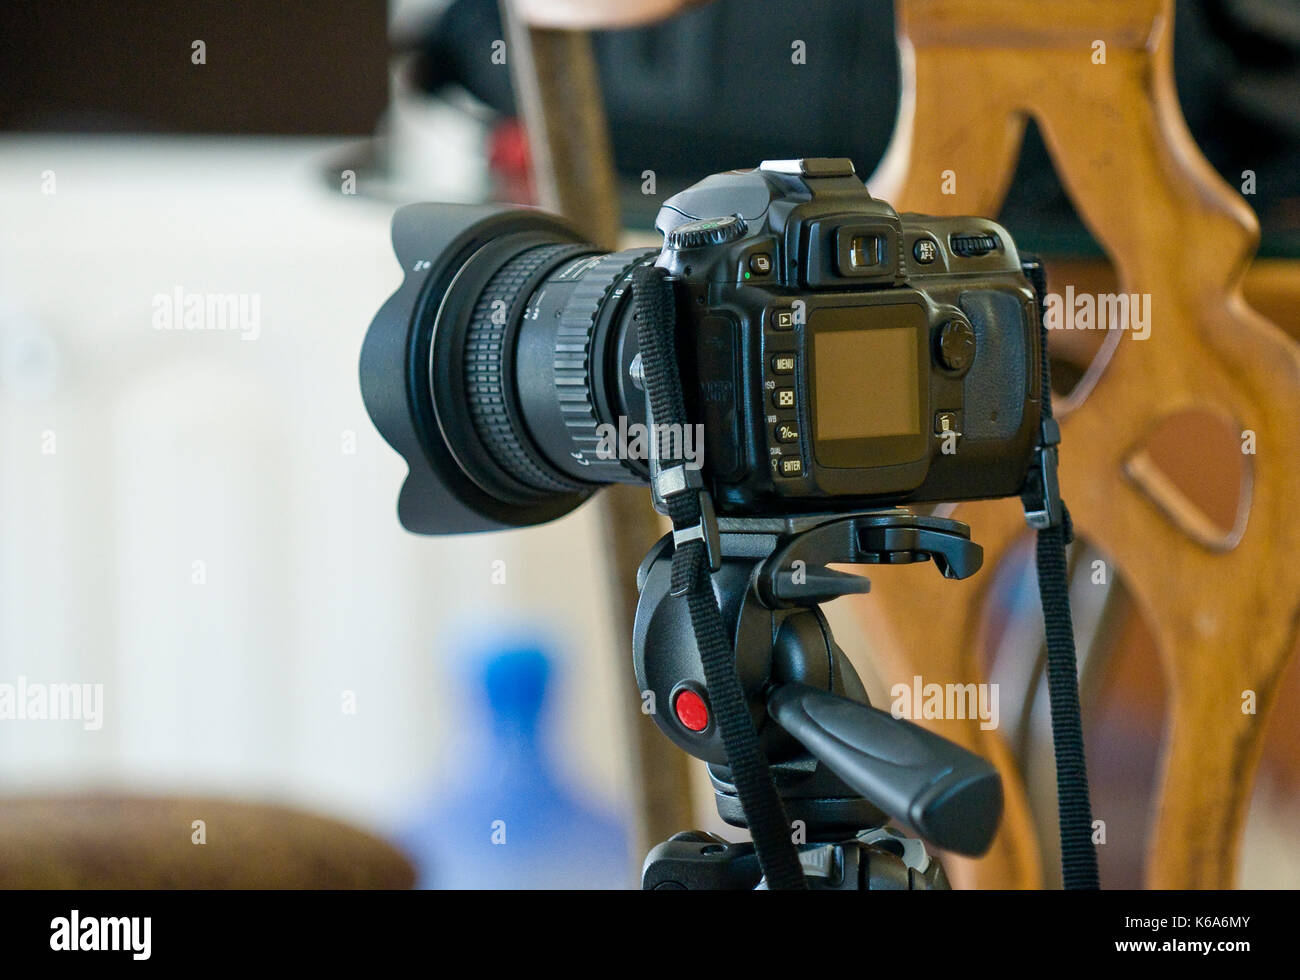 DSLR Mounted on tripod ready to shoot indoor - Stock Image